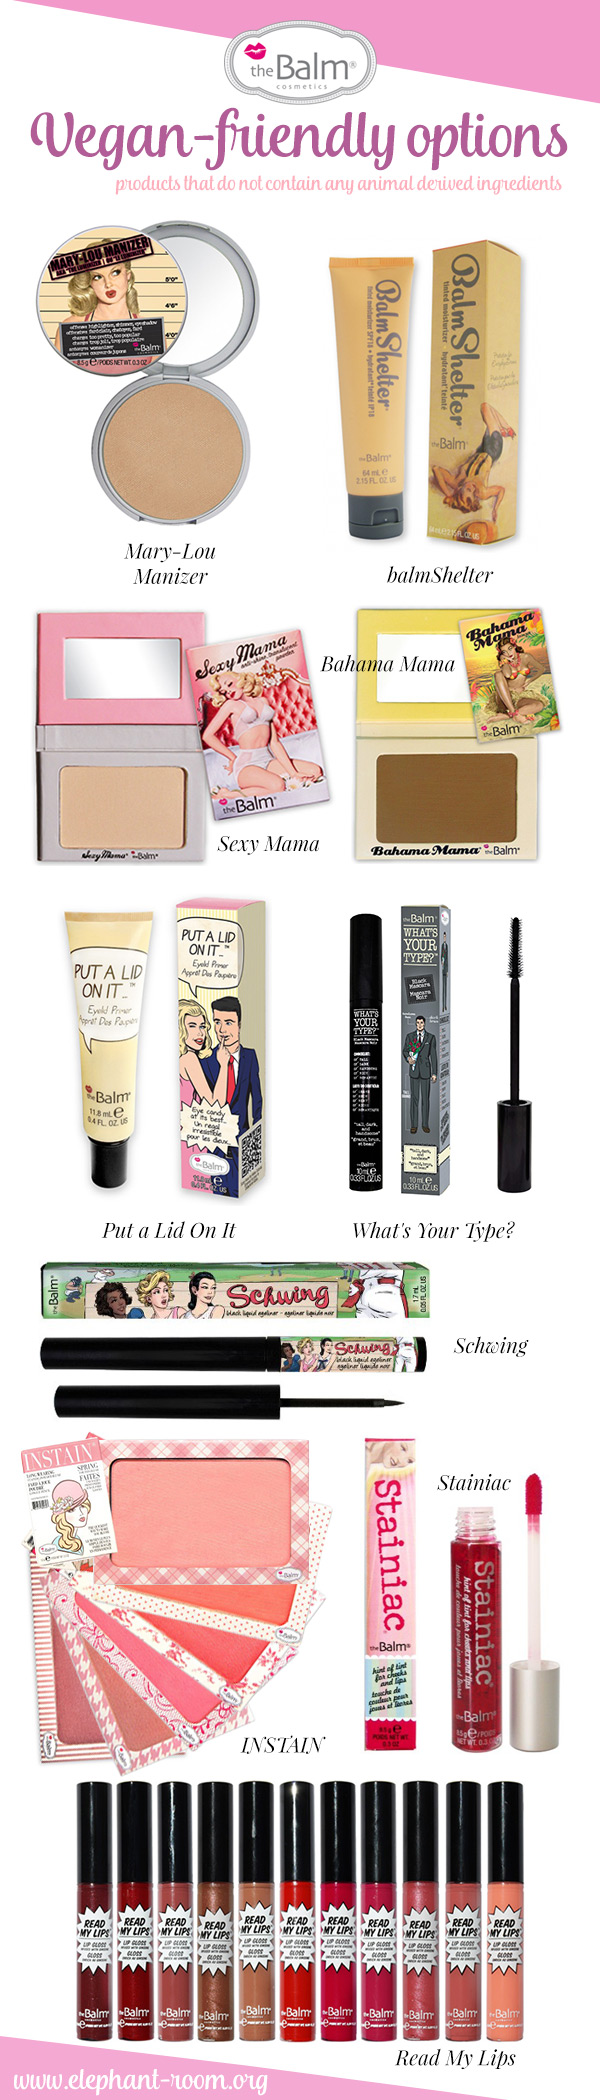 theBalm Cosmetics - Vegan friendly options!